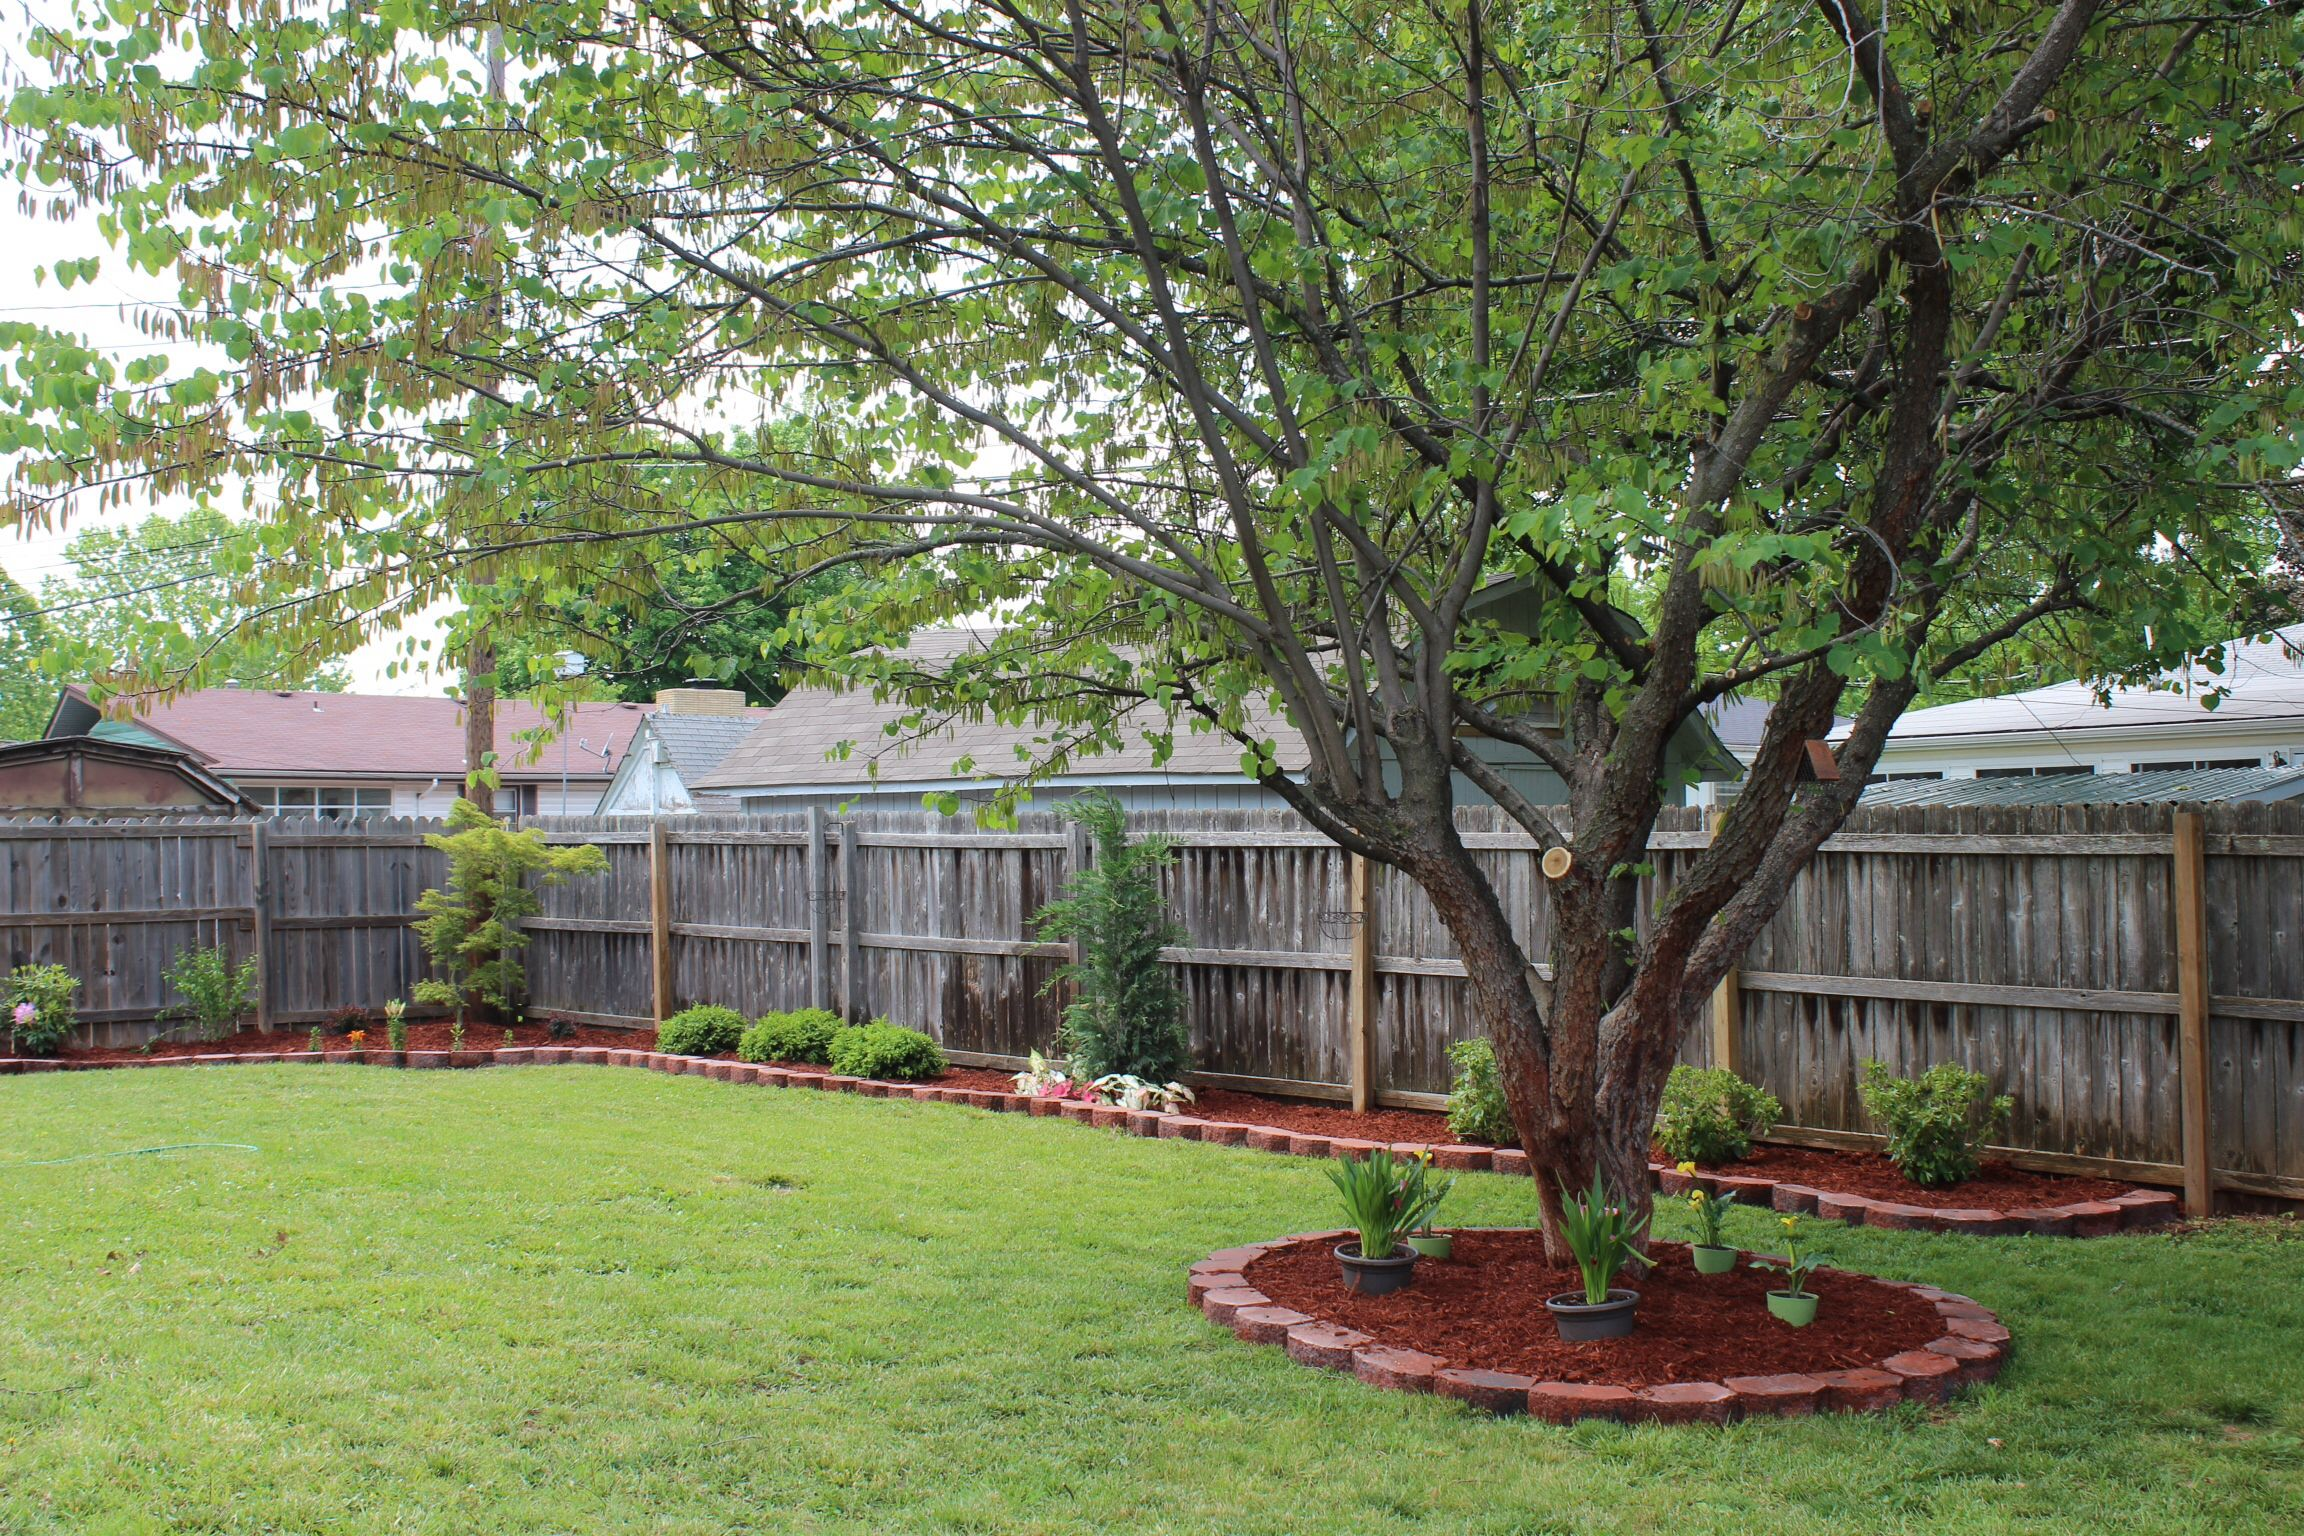 Backyard landscaping next to a privacy fence